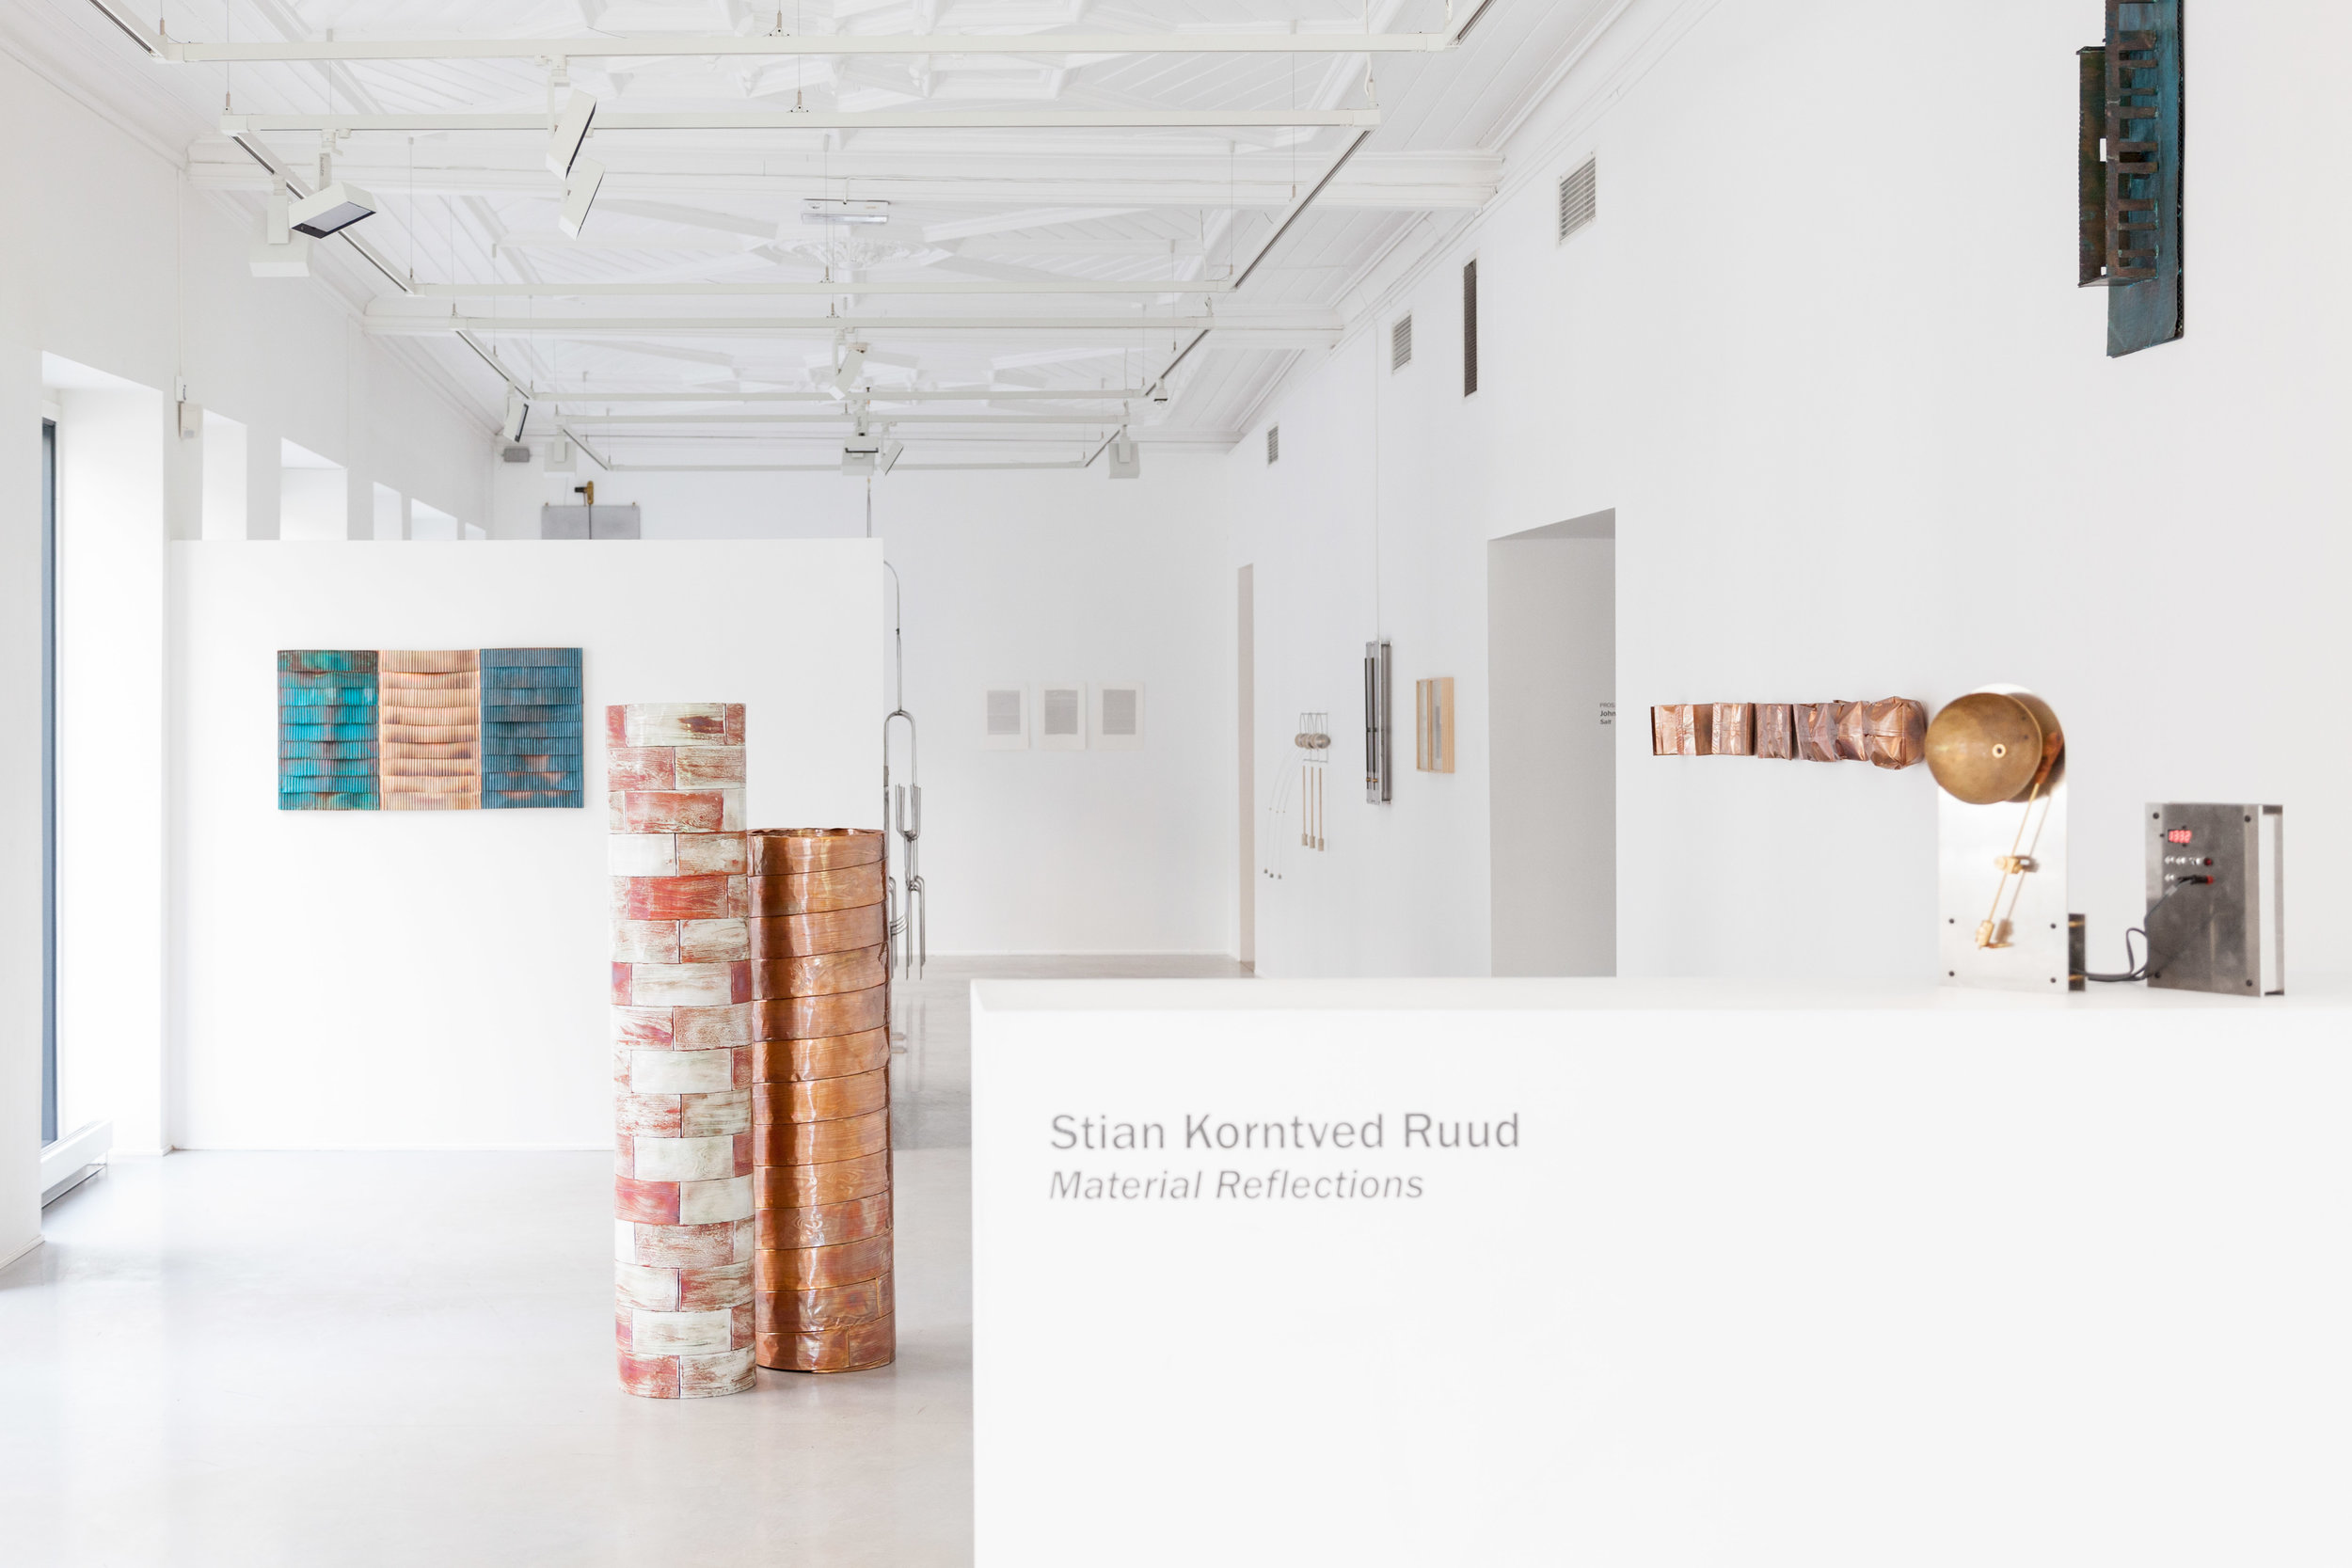 - STIAN KORNTVED RUUD | Material Reflections14 March - 15 May 2019